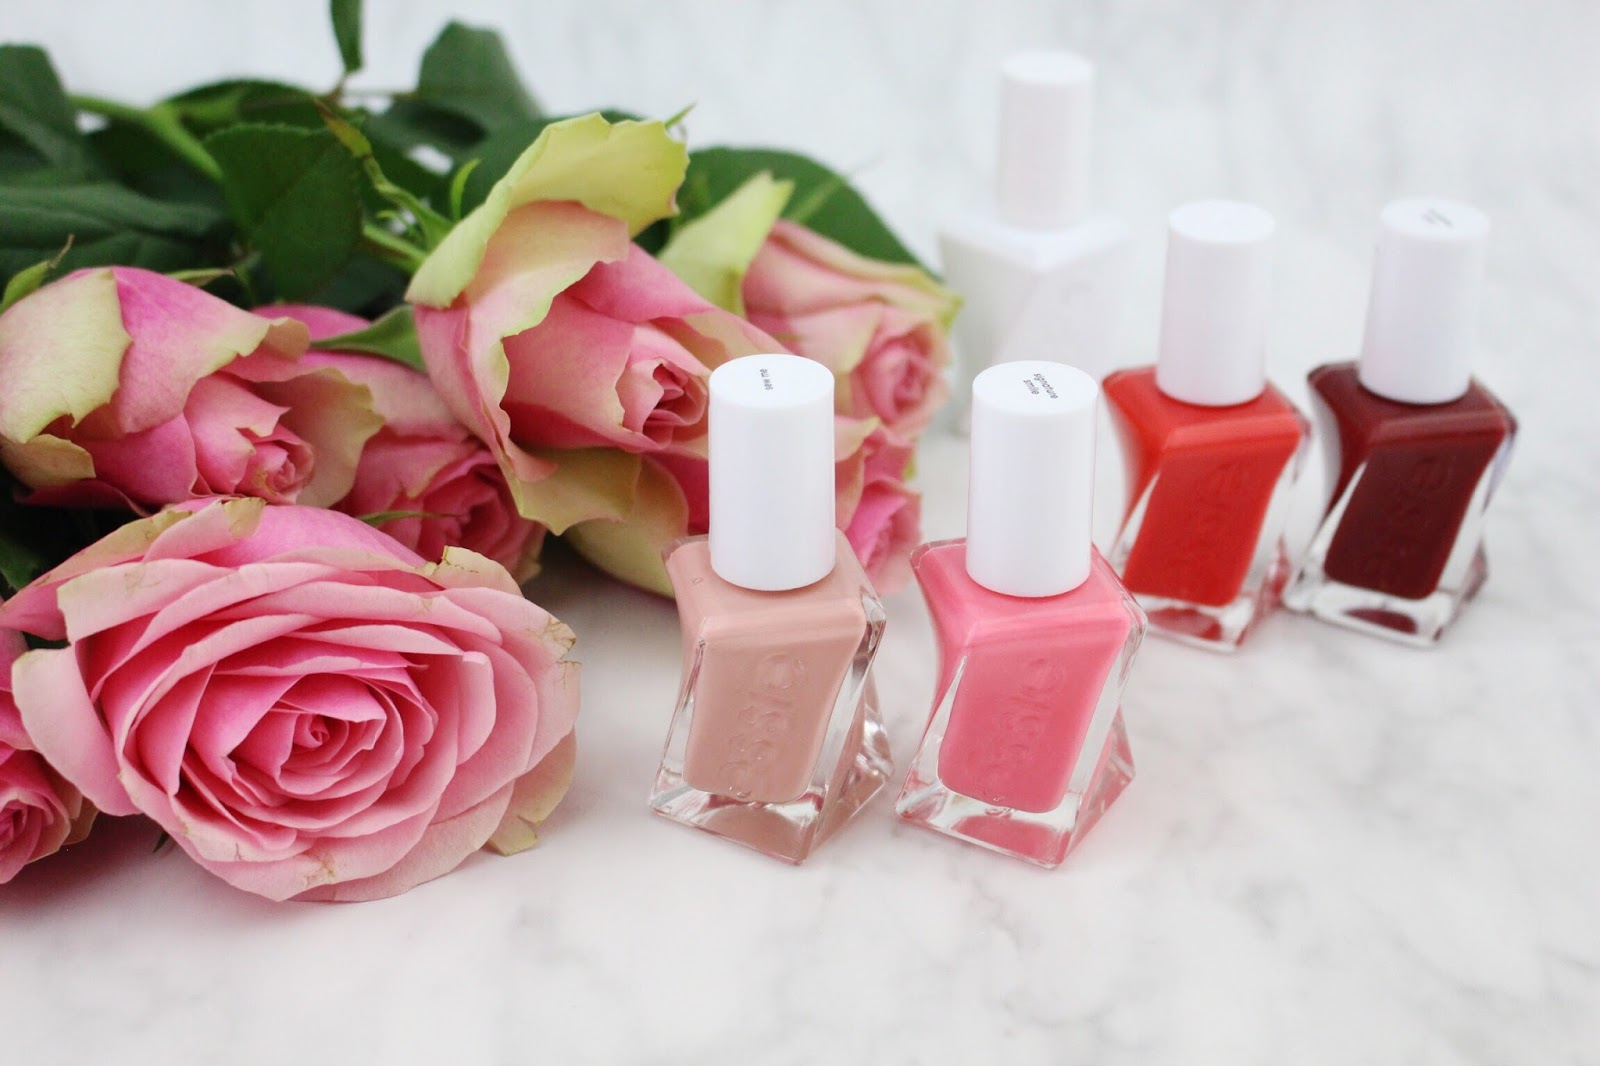 Essie-Shoppinator-Shoppination-Gel-Gellacke-Lacke-Gelcouture-Essiecouture-Couture-Gel-Gelsystem-Essiegel-ohne-UV-Nagellack-neue-Flaschen-Design-neues-Flaschendesign-Neuheit-Innovation-Essieneuheit-gedreht-Nagellack-Flashed-Bubbles-only-weinrot-bordeaux-Signature-Smile-Neon-neonpink-pink-sew-me-sewme-nude